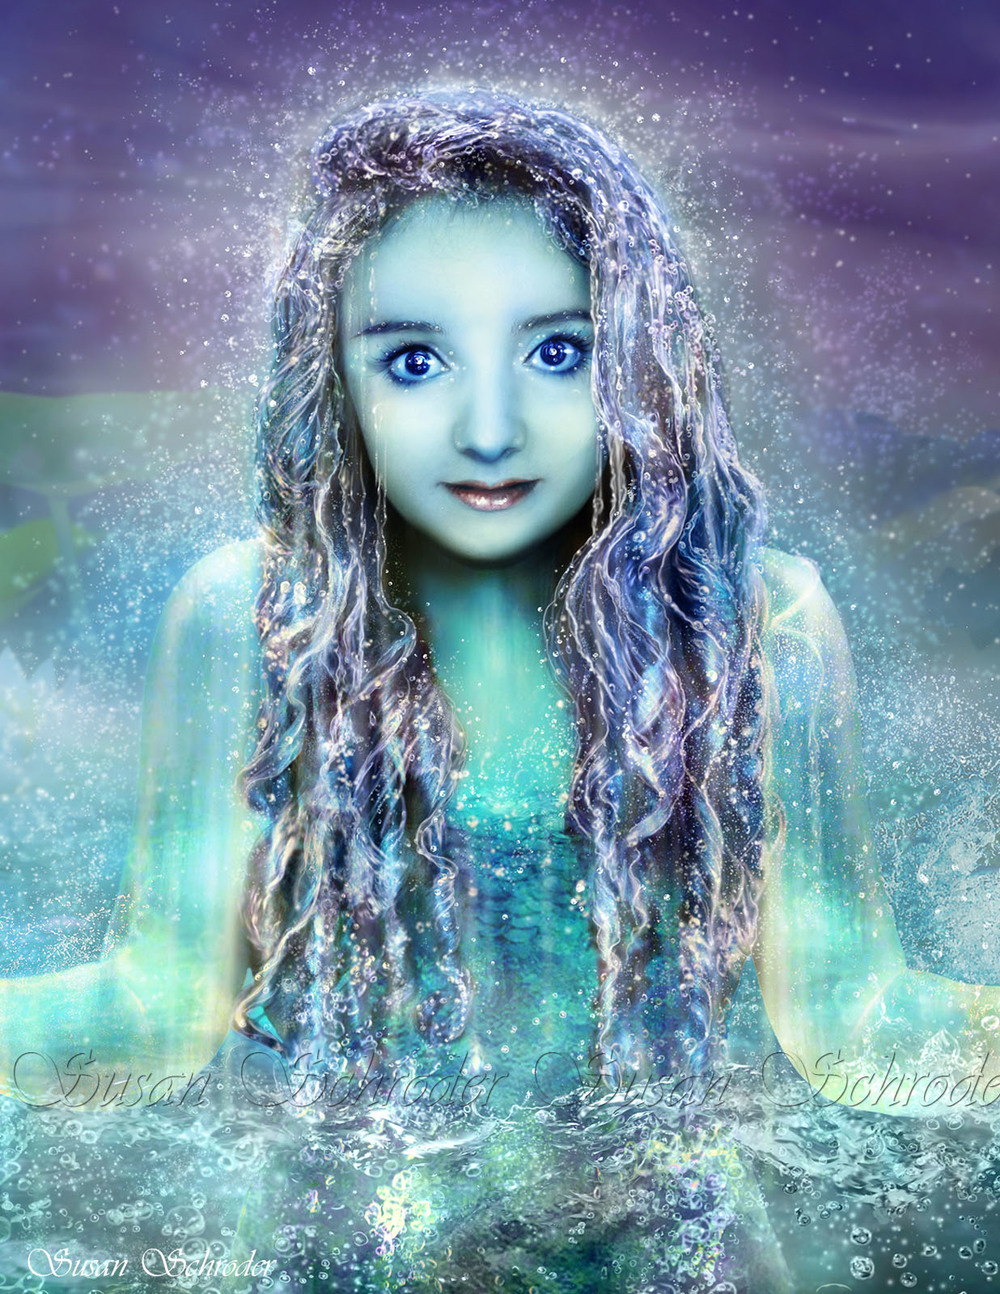 This is an example of a Digital Painting from a real person model and is a small detail of a larger work.   I  painted thousands of tiny, individual water drops and bubbles to create this beautiful Naiad emerging from the water!  Click on image to enlarge.